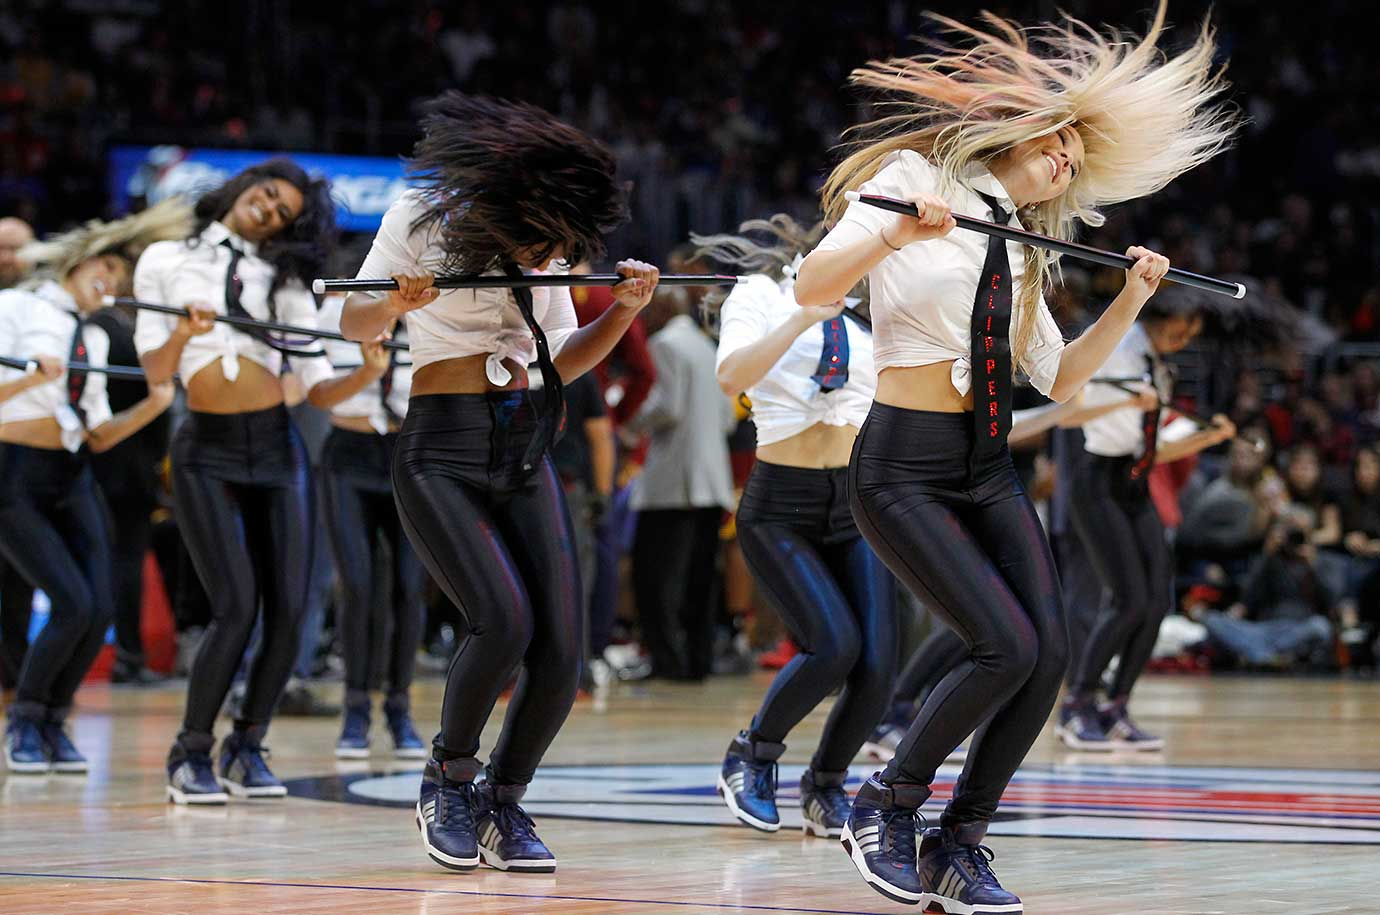 The Los Angeles Clippers Spirit cheerleaders go through a routine during a timeout.